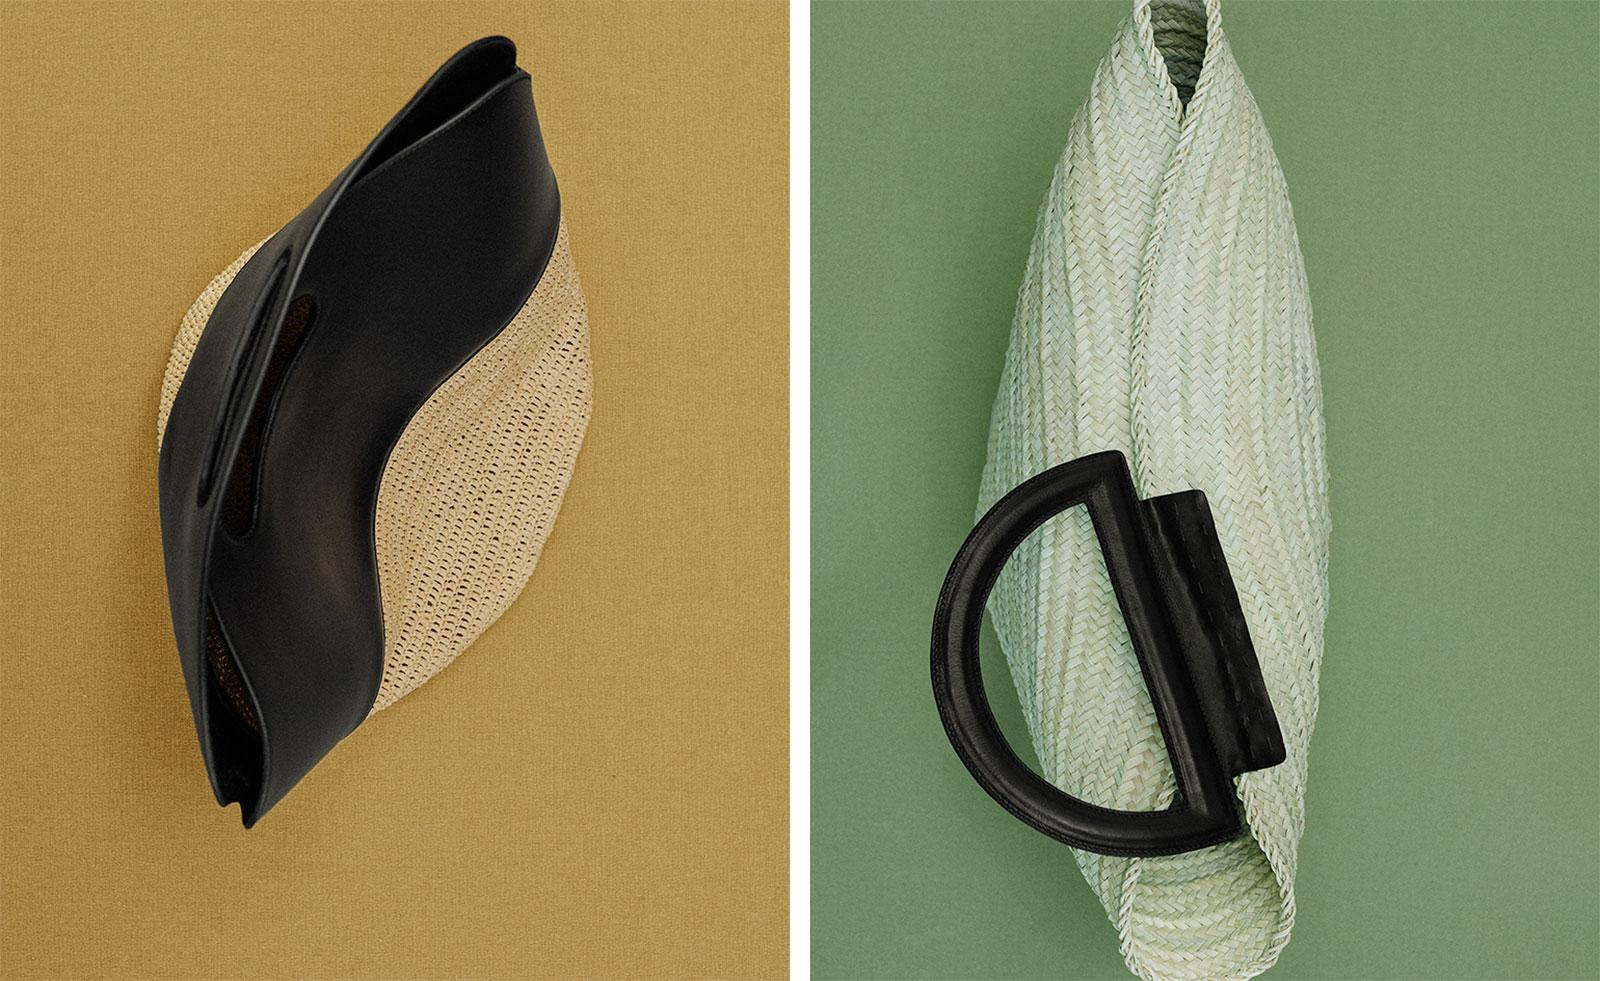 The wicker bags weaving style magic for summer